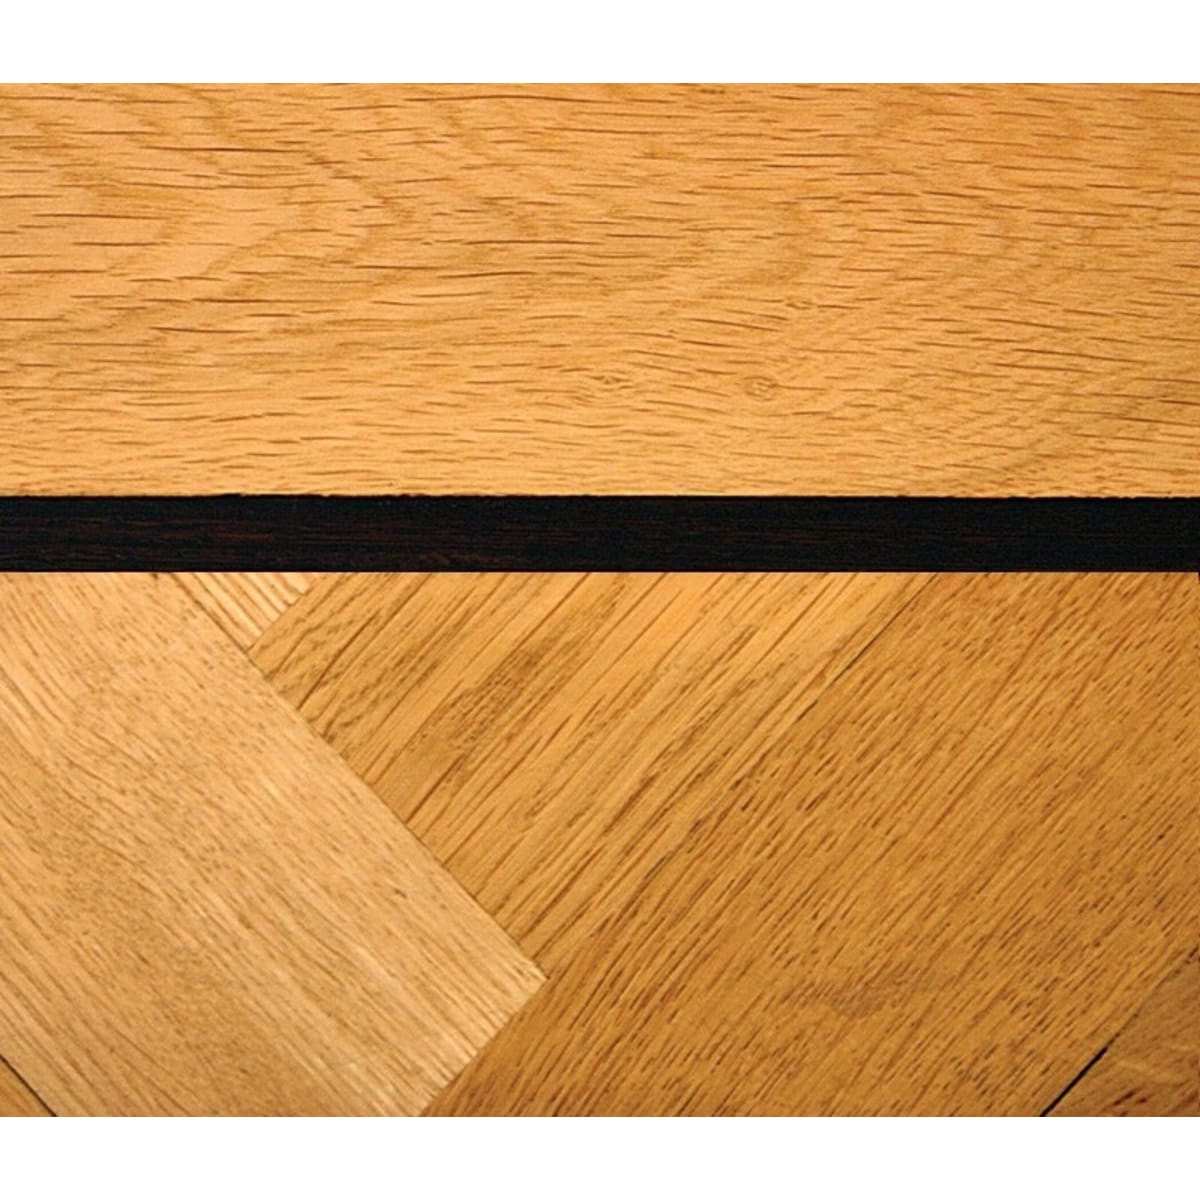 The Finishing Touch Floors: Wenge Parquet 22mm Insert Strip